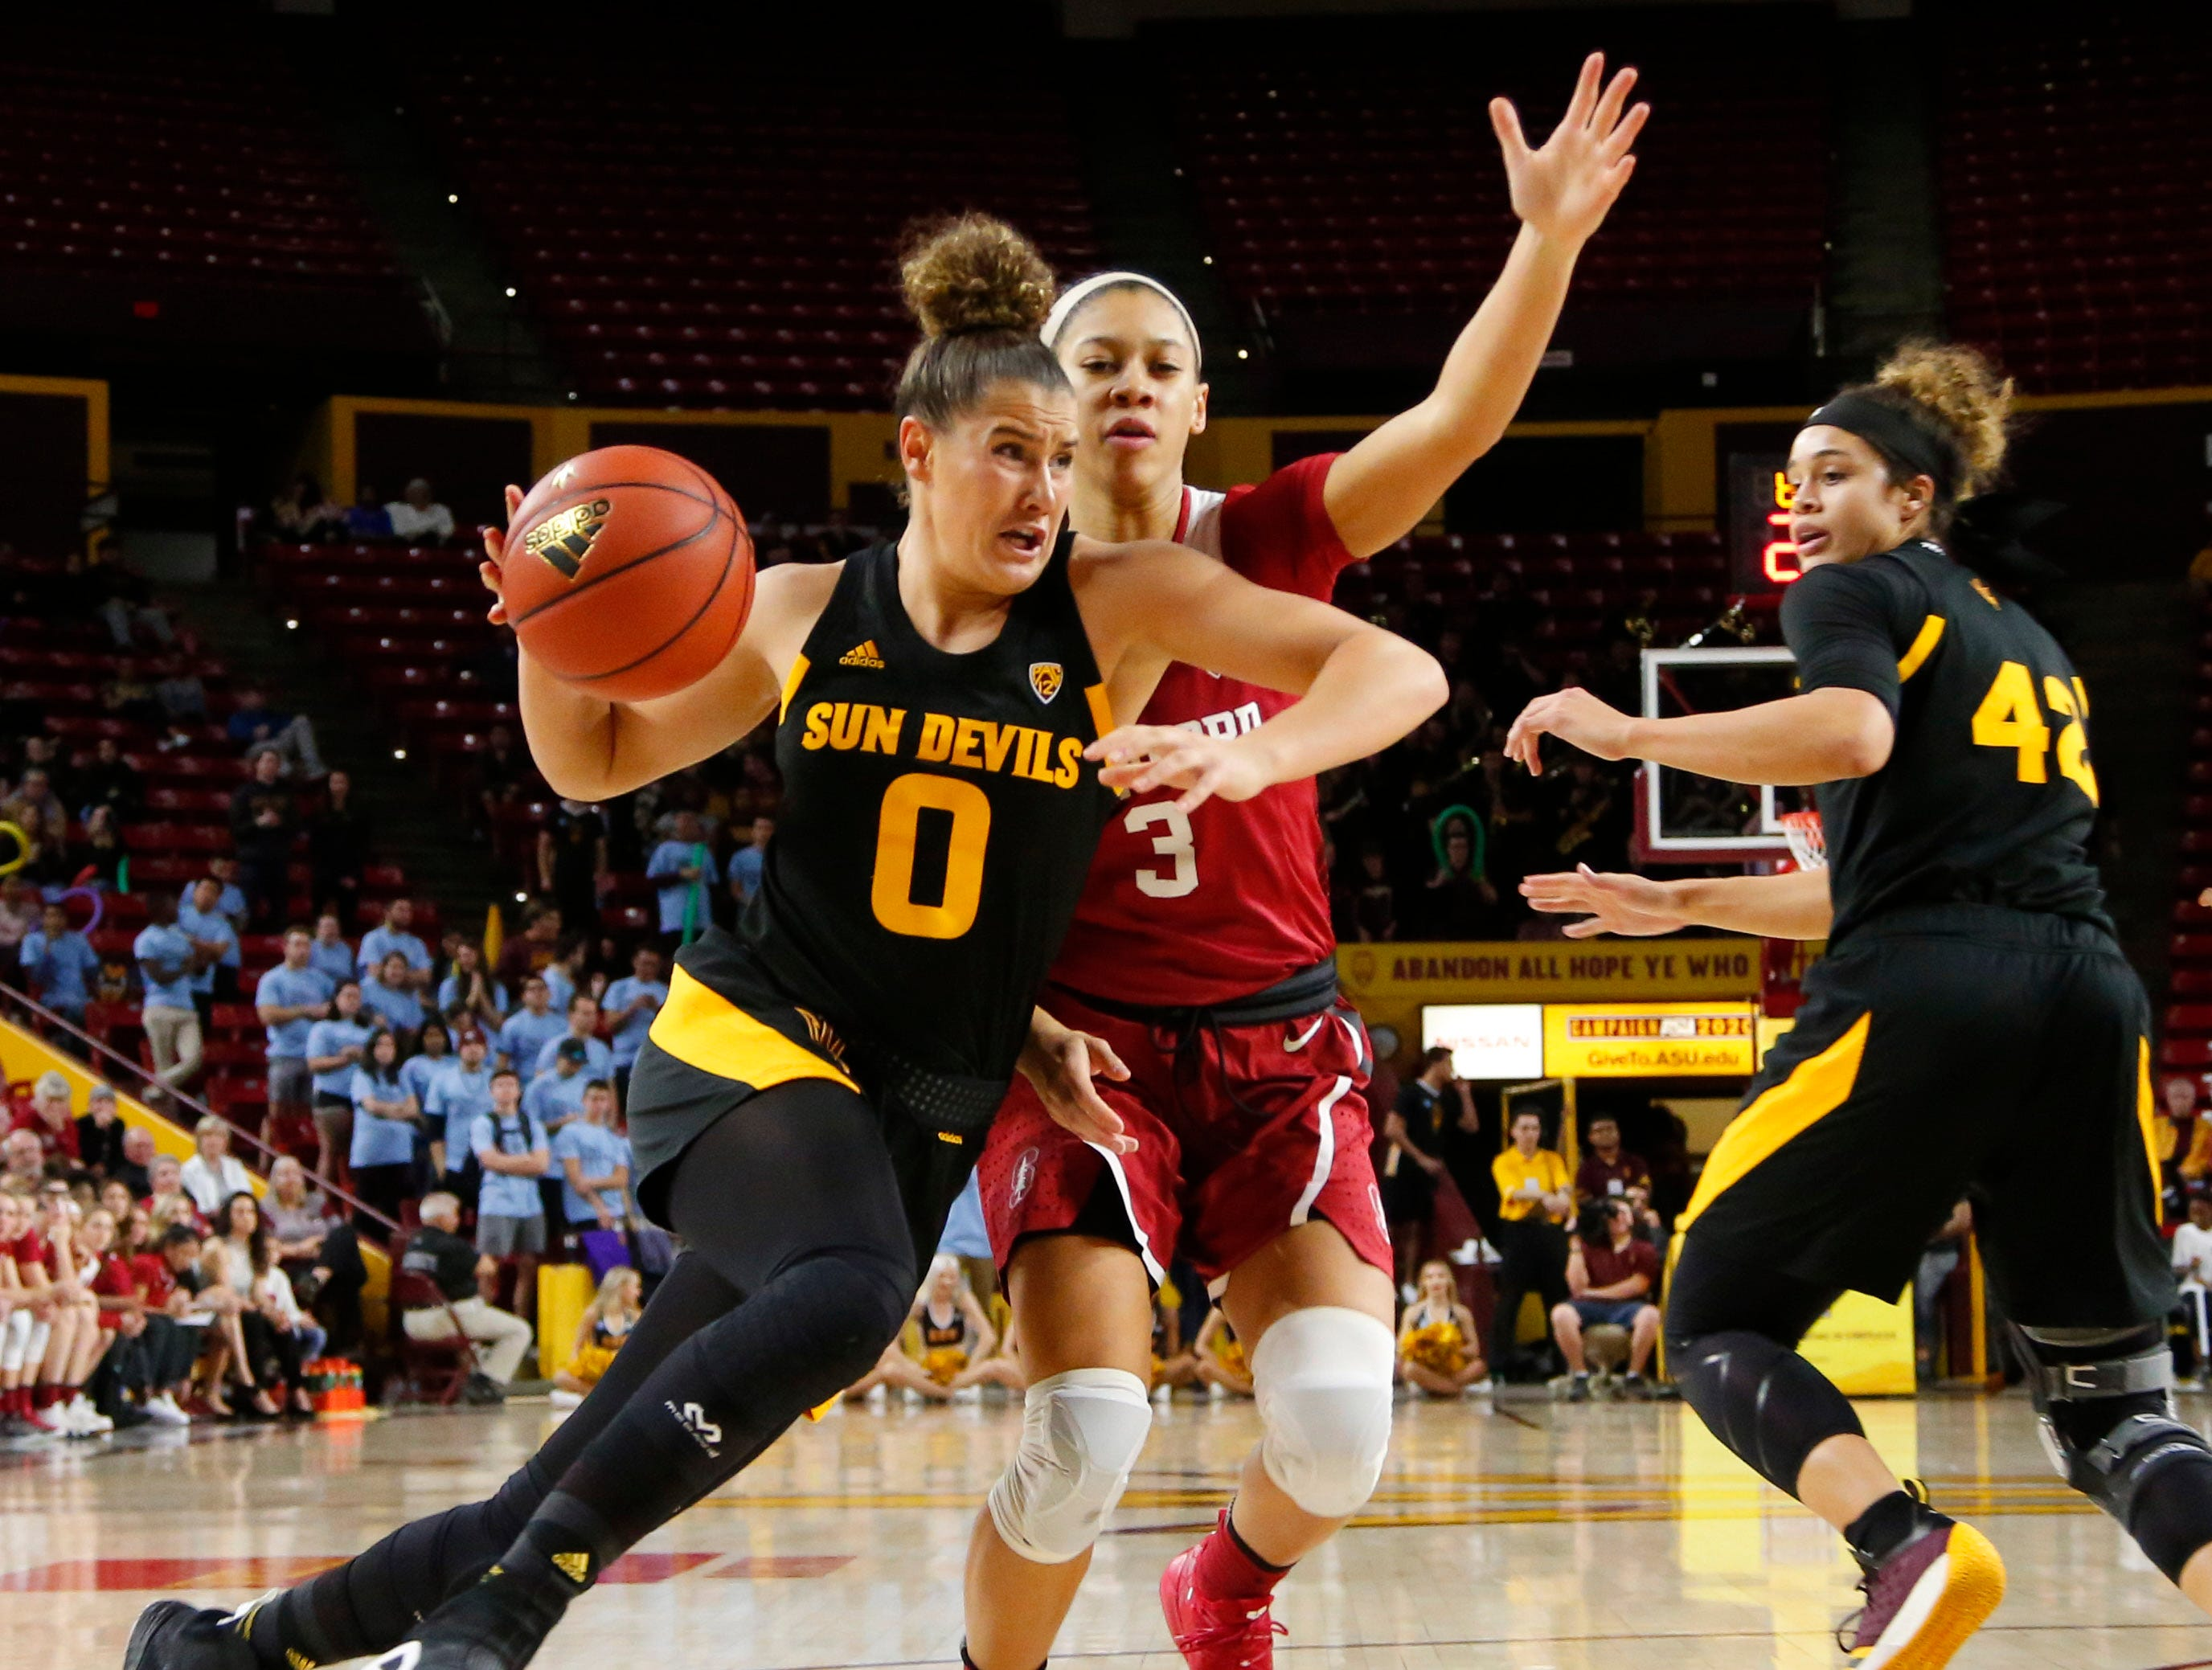 Arizona State University Taya Hanson (0)  dribbles around Stanford University Anna Wilson (3) during a women's basketball game at Well Fargo Arena in Tempe on January 11.